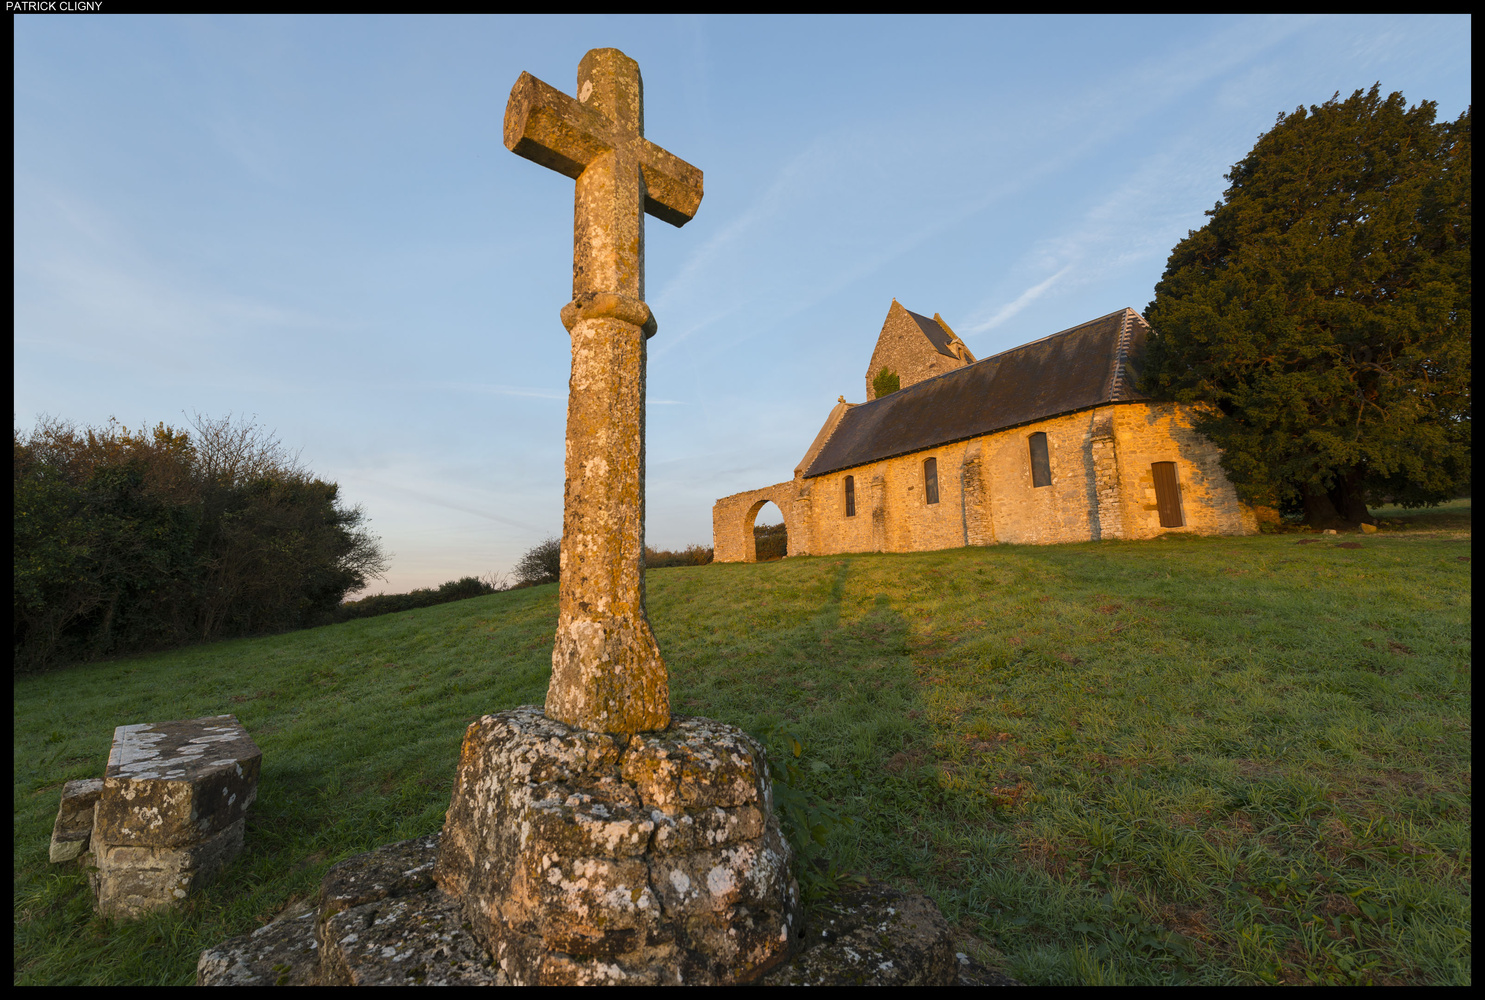 Chapel in Mont Doville, Normandy, France by Patrick CLIGNY